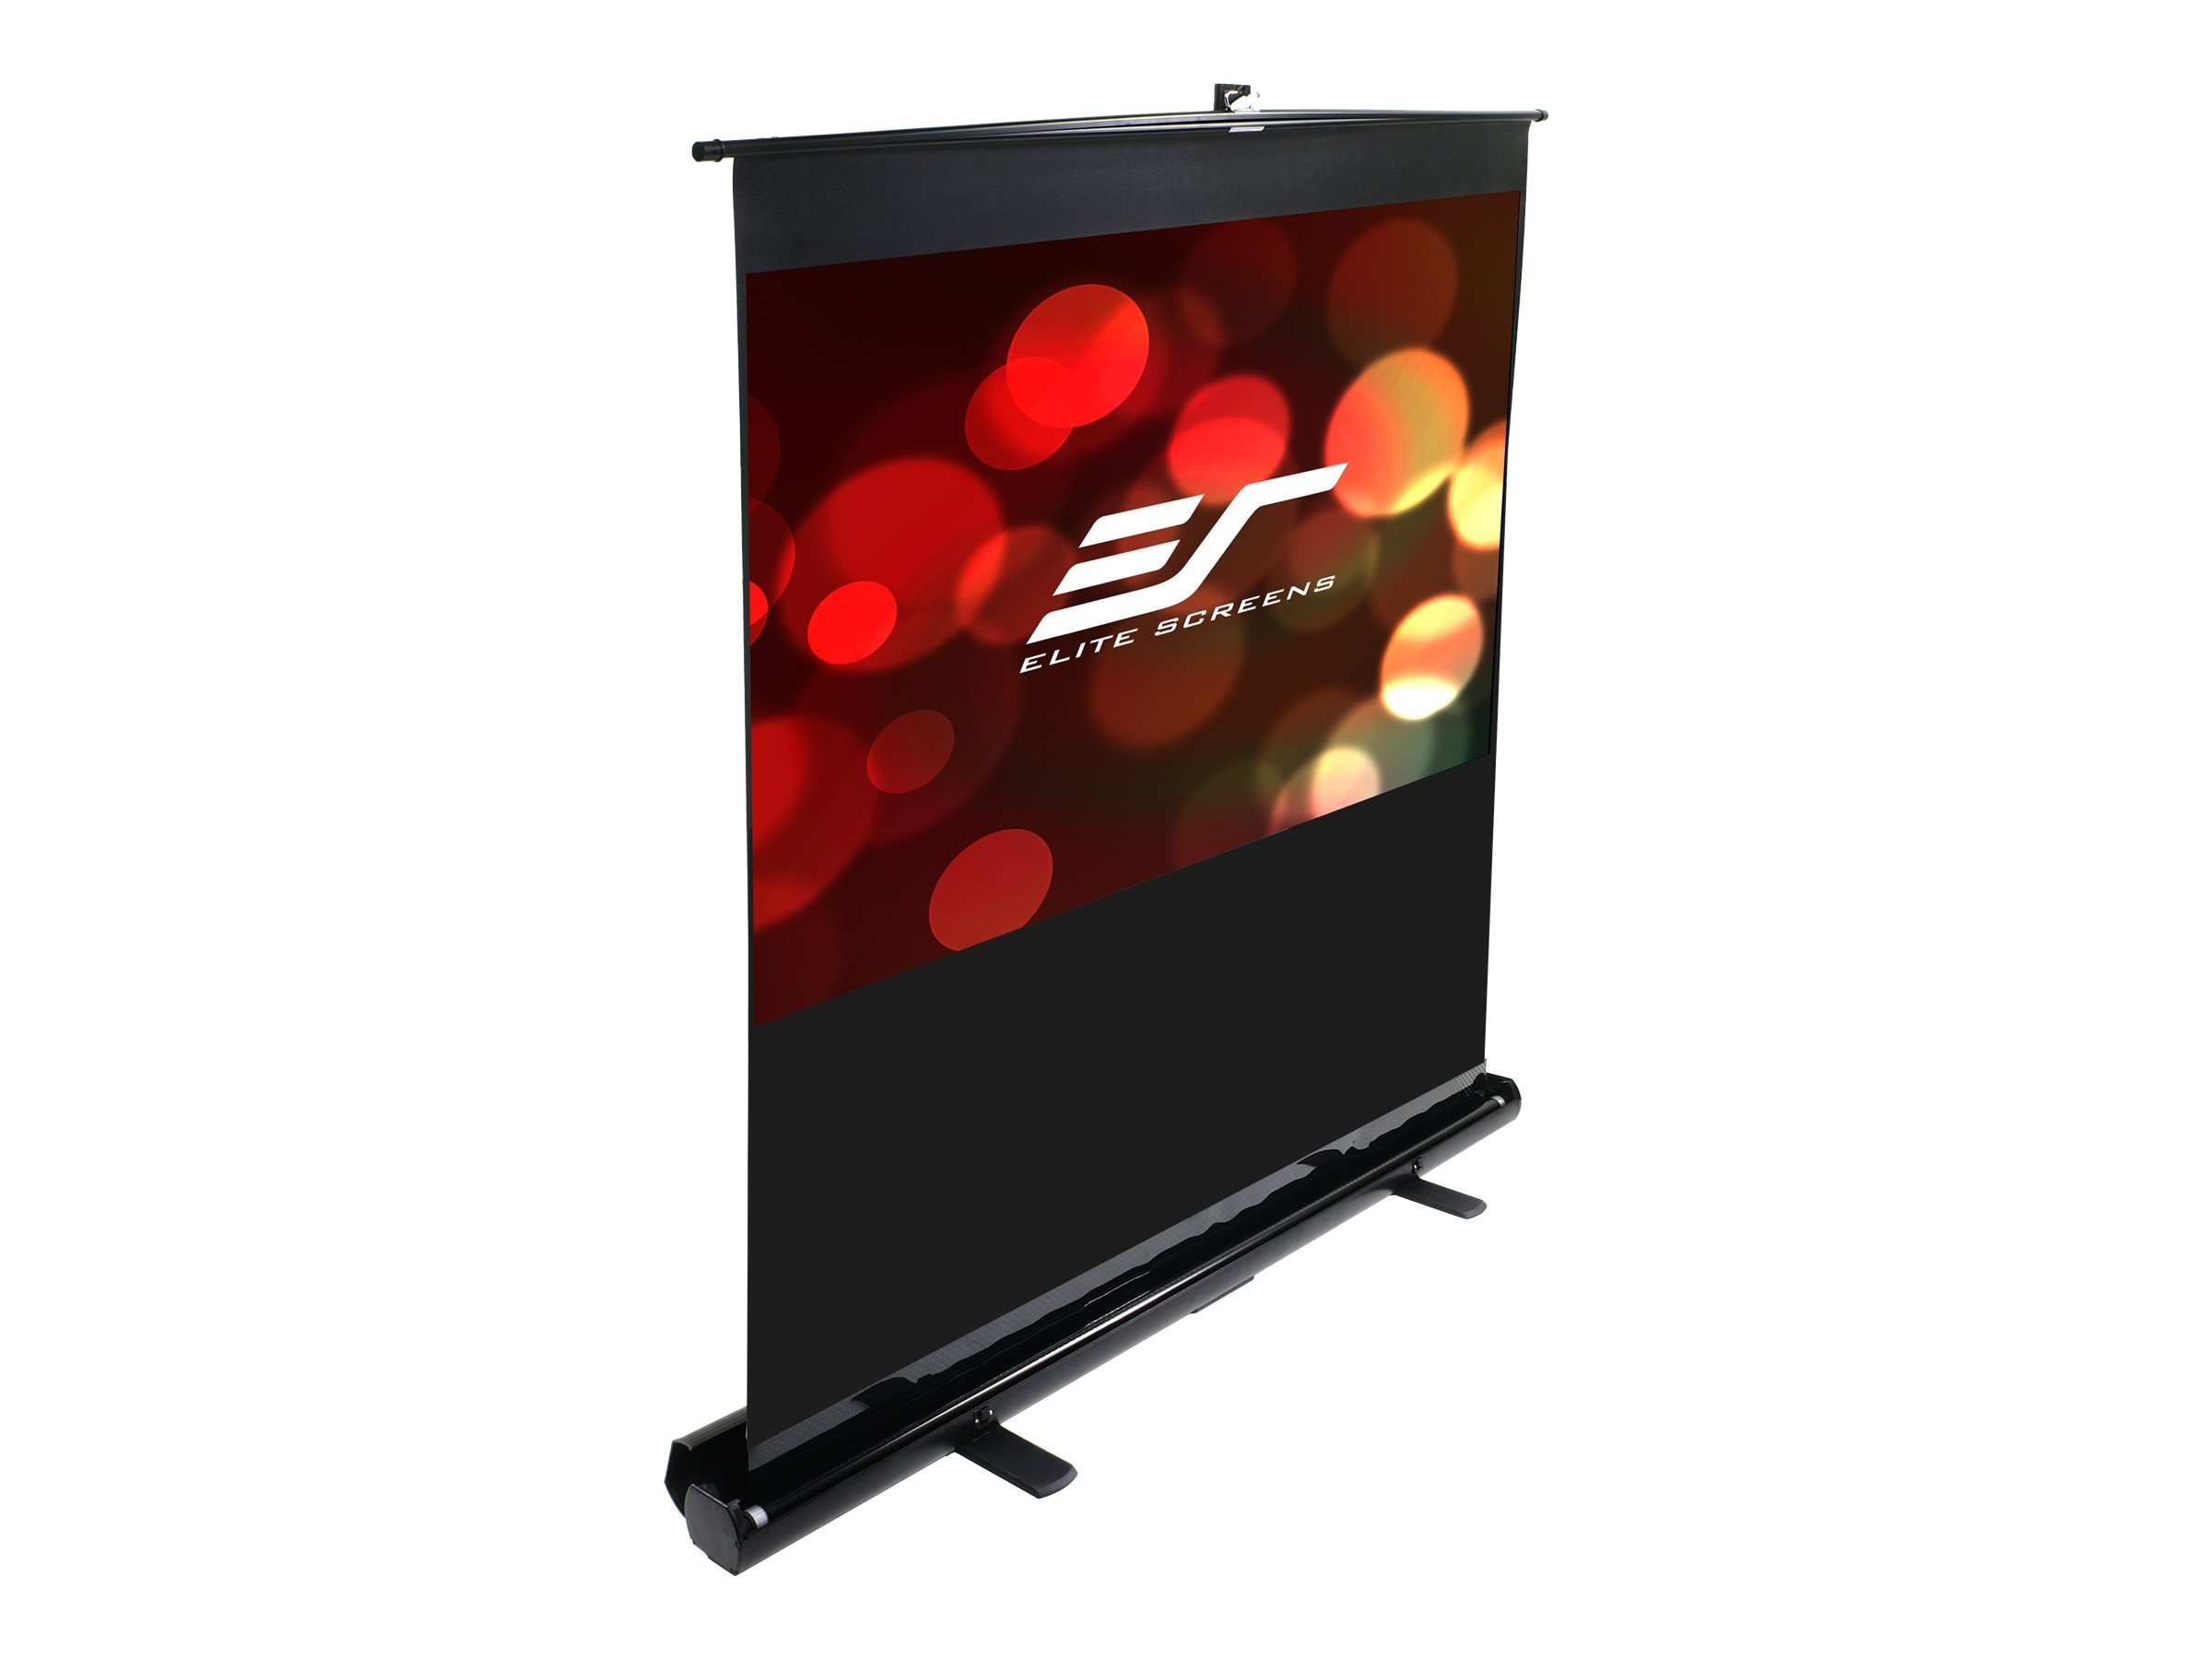 Elite ez-Cinema Series Projection Screen, Matte White, 16:9, 49 x 87in, F100NWH, 6056363, Projector Screens